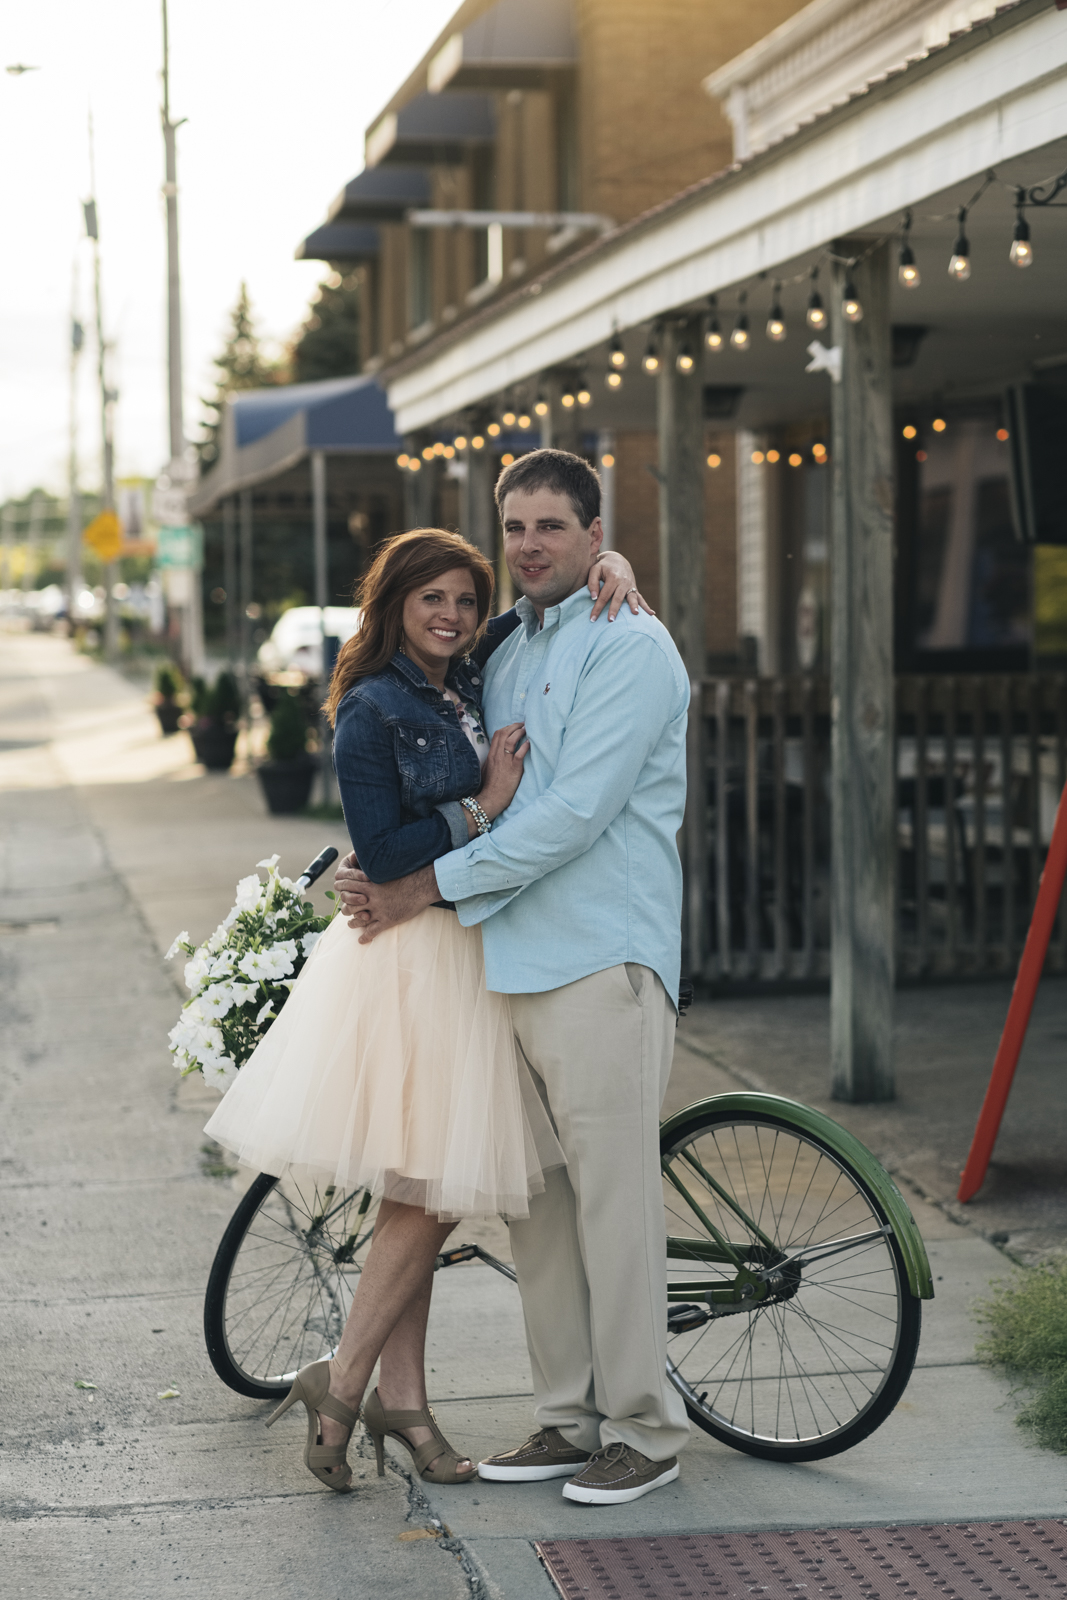 Sunset engagement session in downtown Marblehead Island, Ohio.